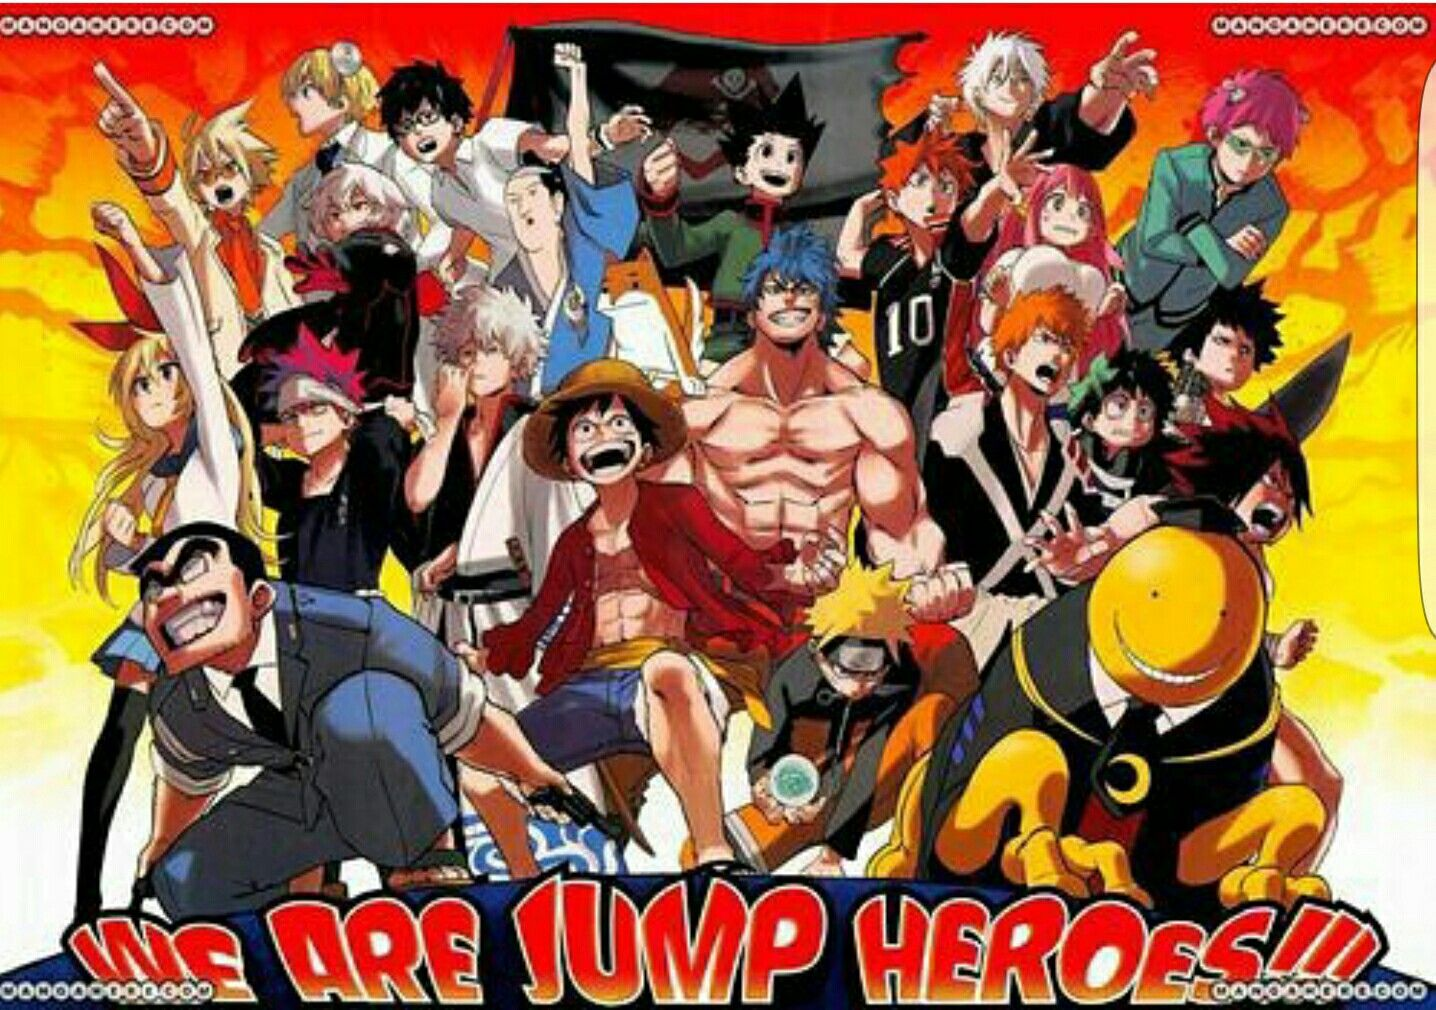 We are Jump heroes!!!, text, anime characters, crossover